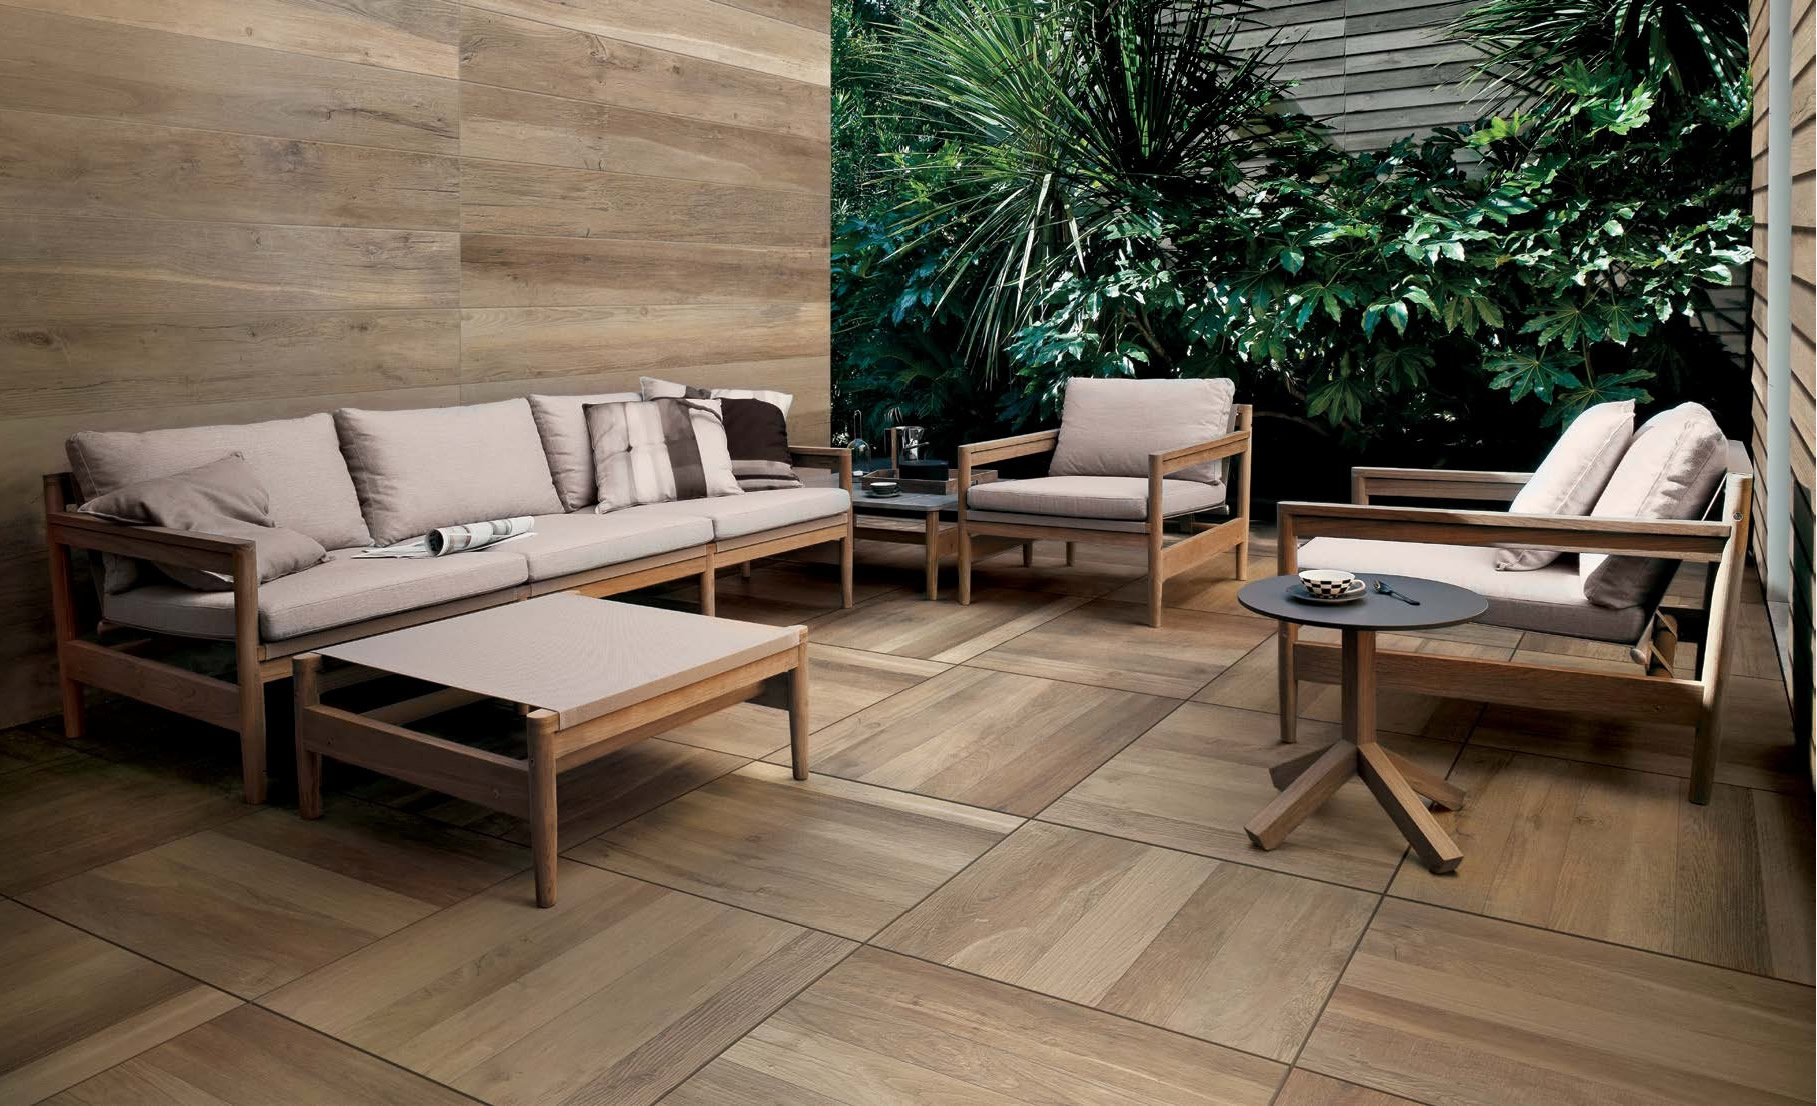 Pool Kaufen Celle Hdg Legno Wood Finish Pavers Orinda Light Hdg Building